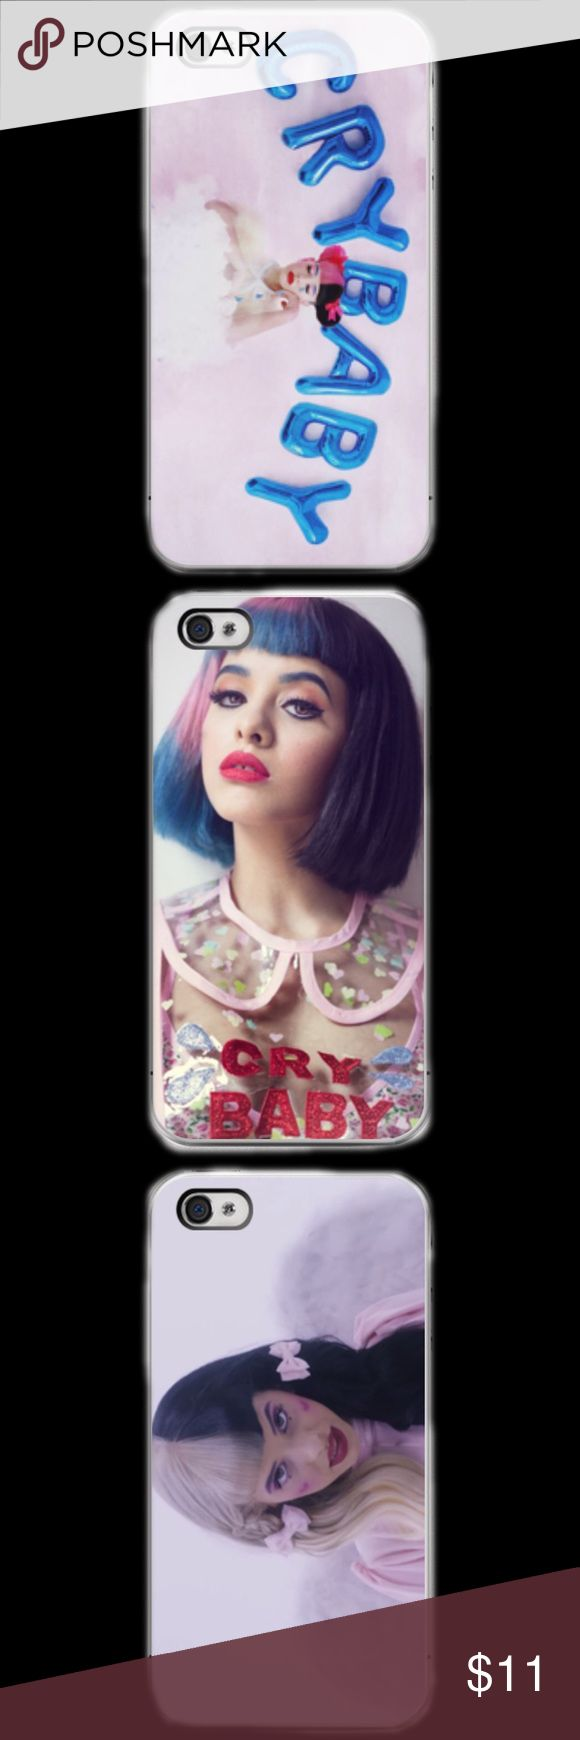 MELANIE MARTINEZ IPHONE 5c 5/5s 6/6s 6/6s+ LISTING IS FOR ONE CASE. YOU GET TO CHOOSE WHAT DESIGN YOU WANT. This a iPhone 5c 5/5s 6/6s 6/6s Plus phone case. It is made of durable hard plastic. Easy snap-on design for a lightweight feel and great phone protection. PLEASE SPECIFY WHAT SIZE CASE AND PICTURE OF CASE. BEFORE YOU PURCHASE LET US KNOW WHAT SIZE AND PICTURE.  